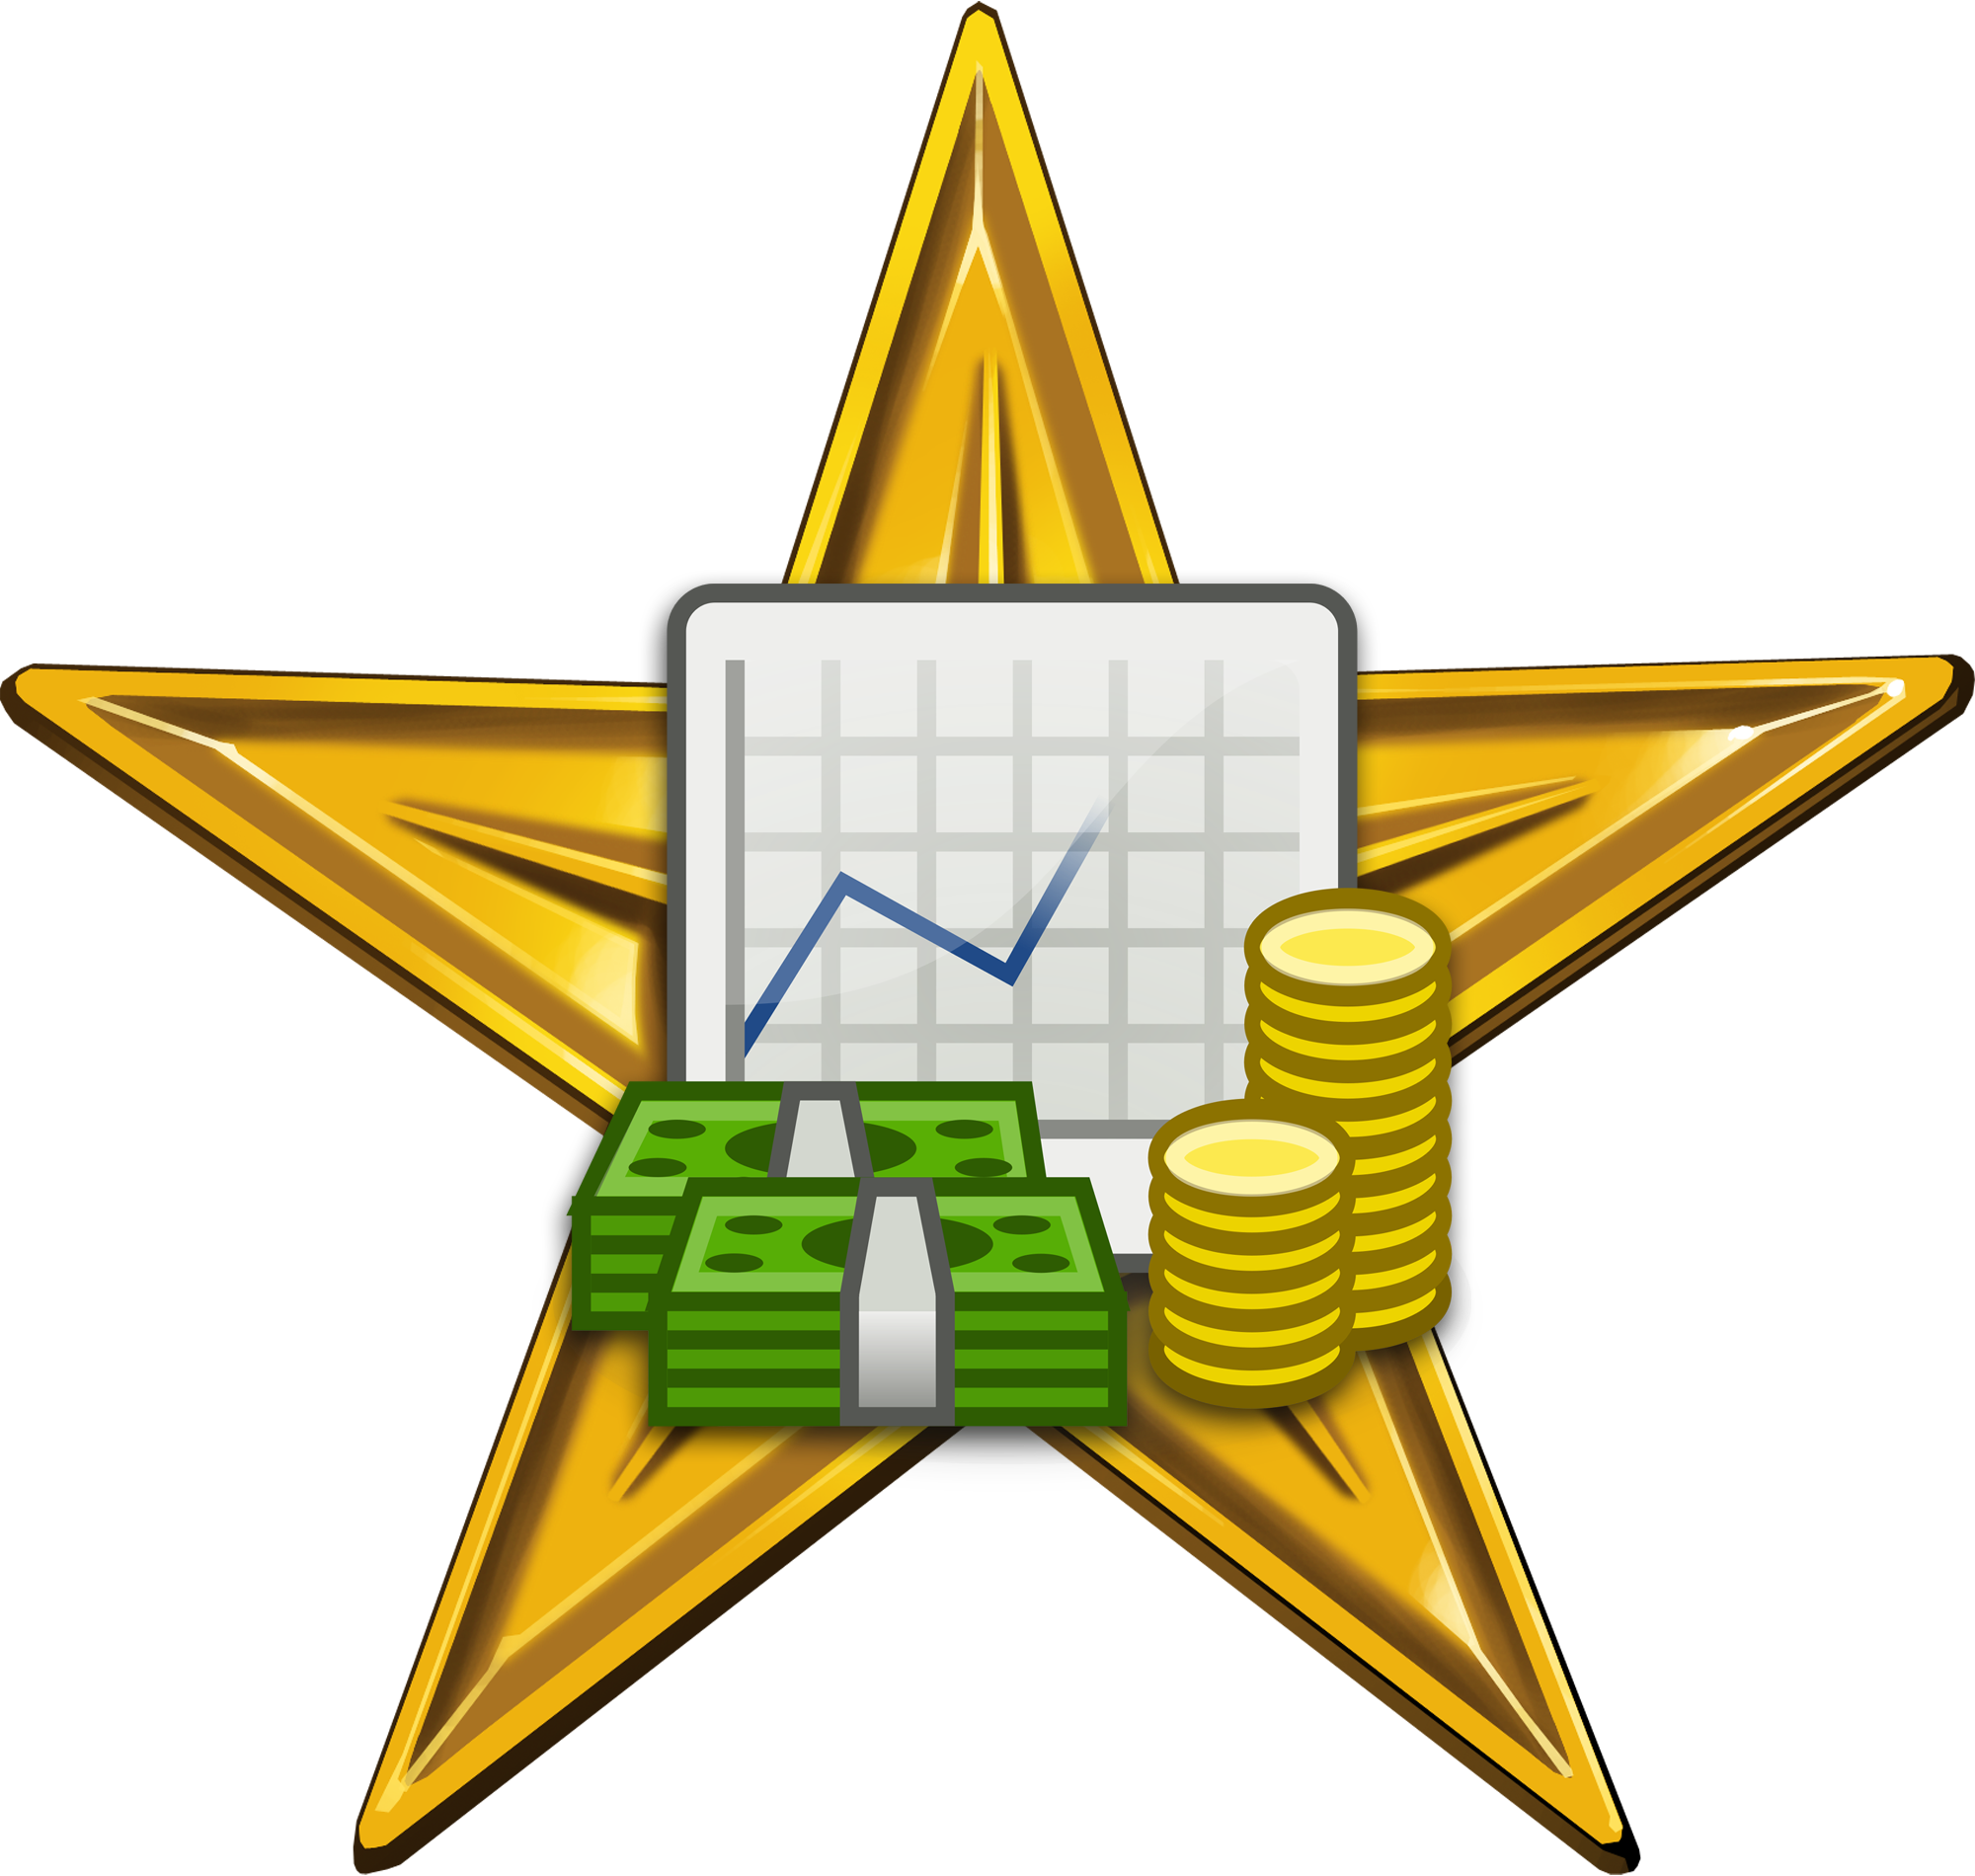 economic clipart - photo #28